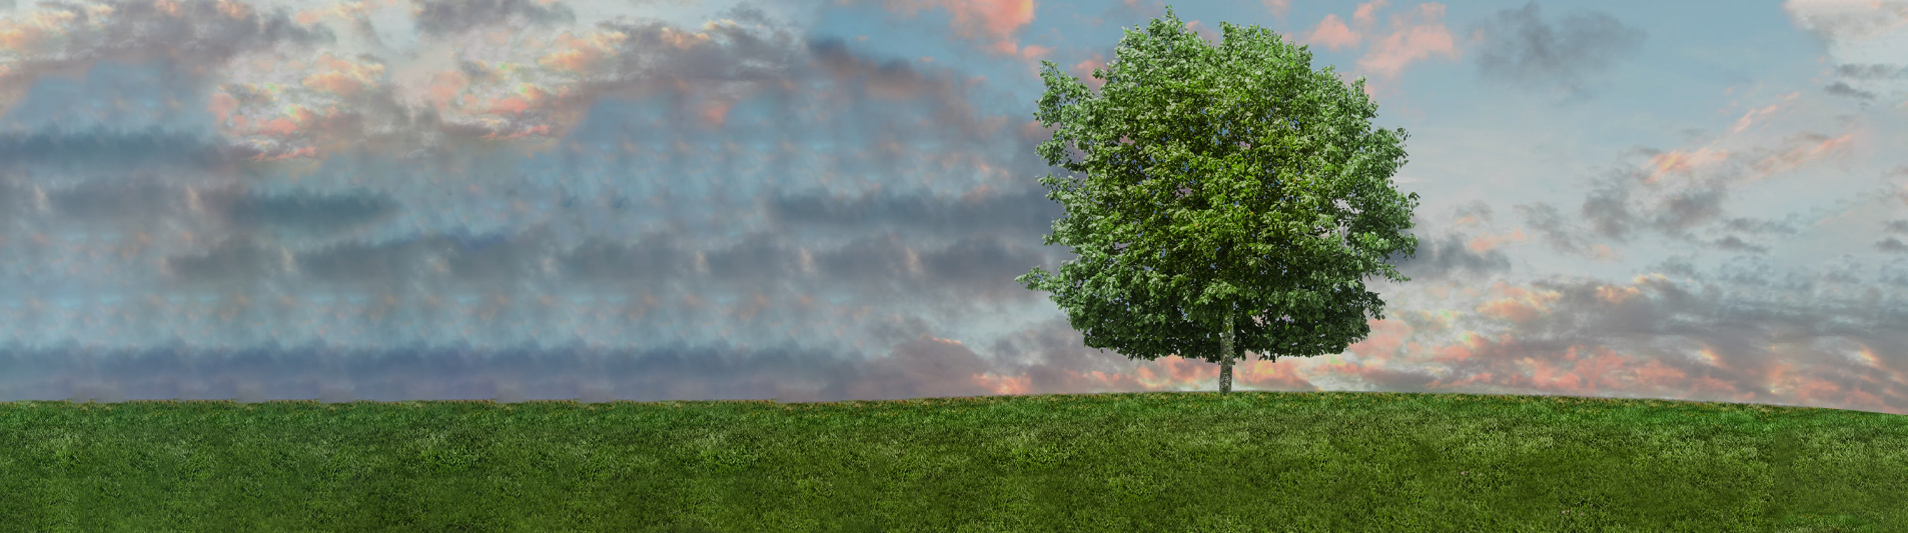 Eco-Friendly-banner-img